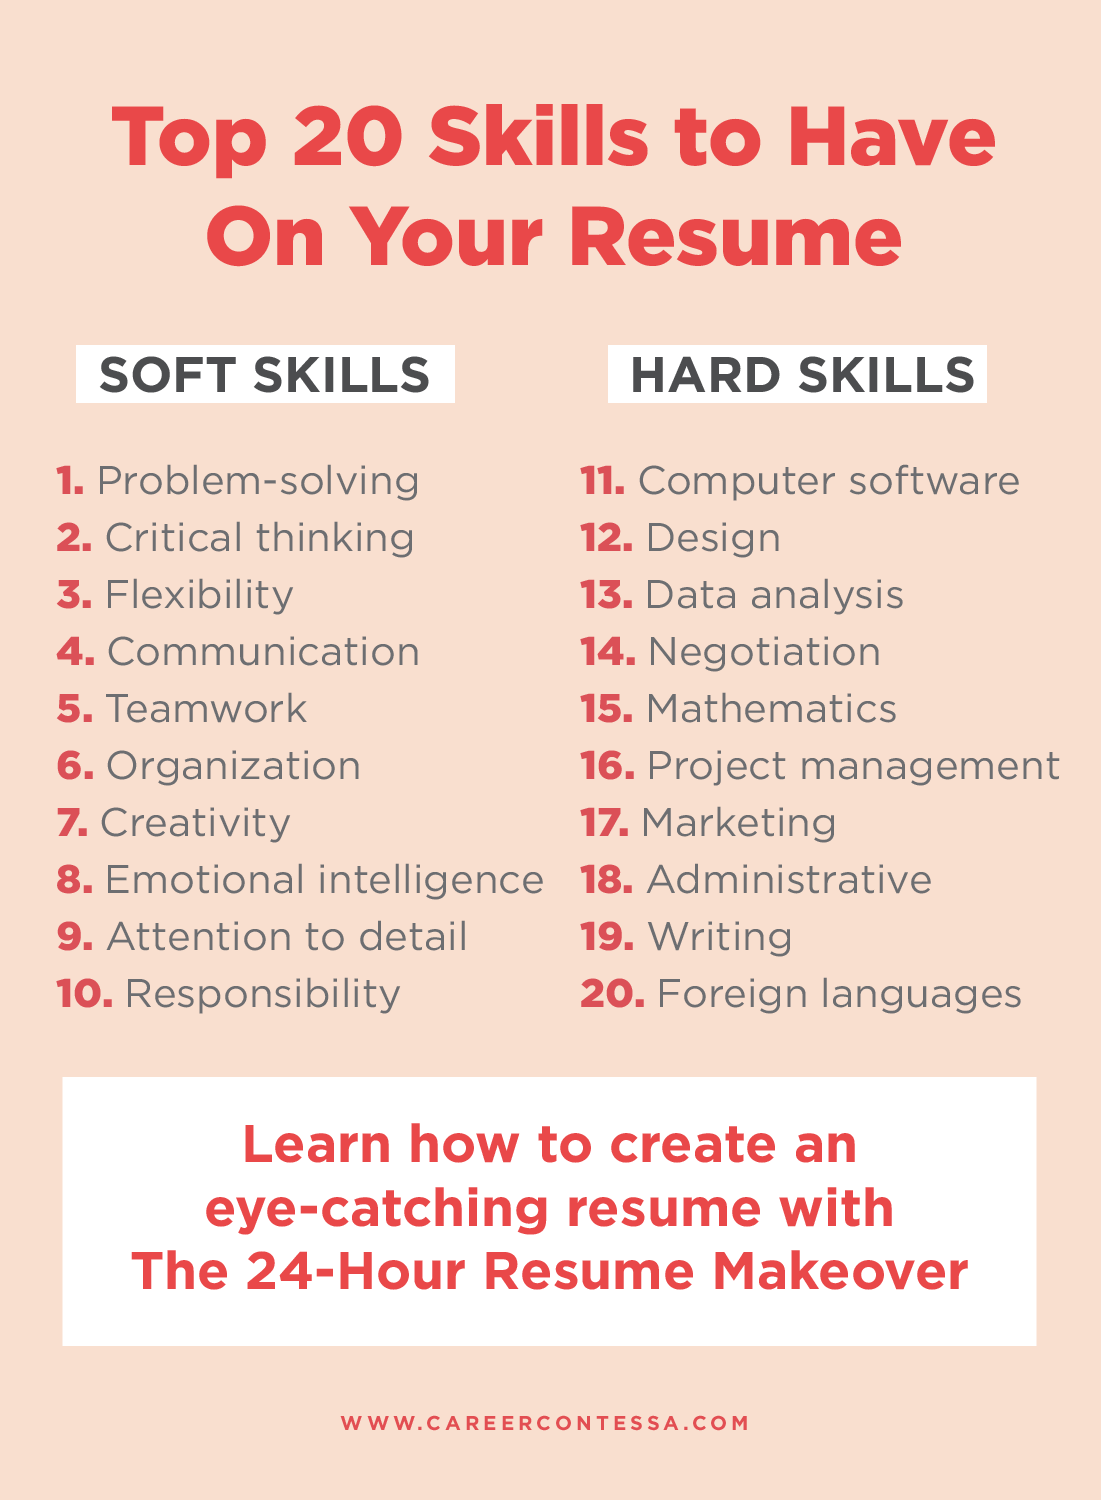 Resume Ideas for Skills Of the 24 Hour Resume Makeover